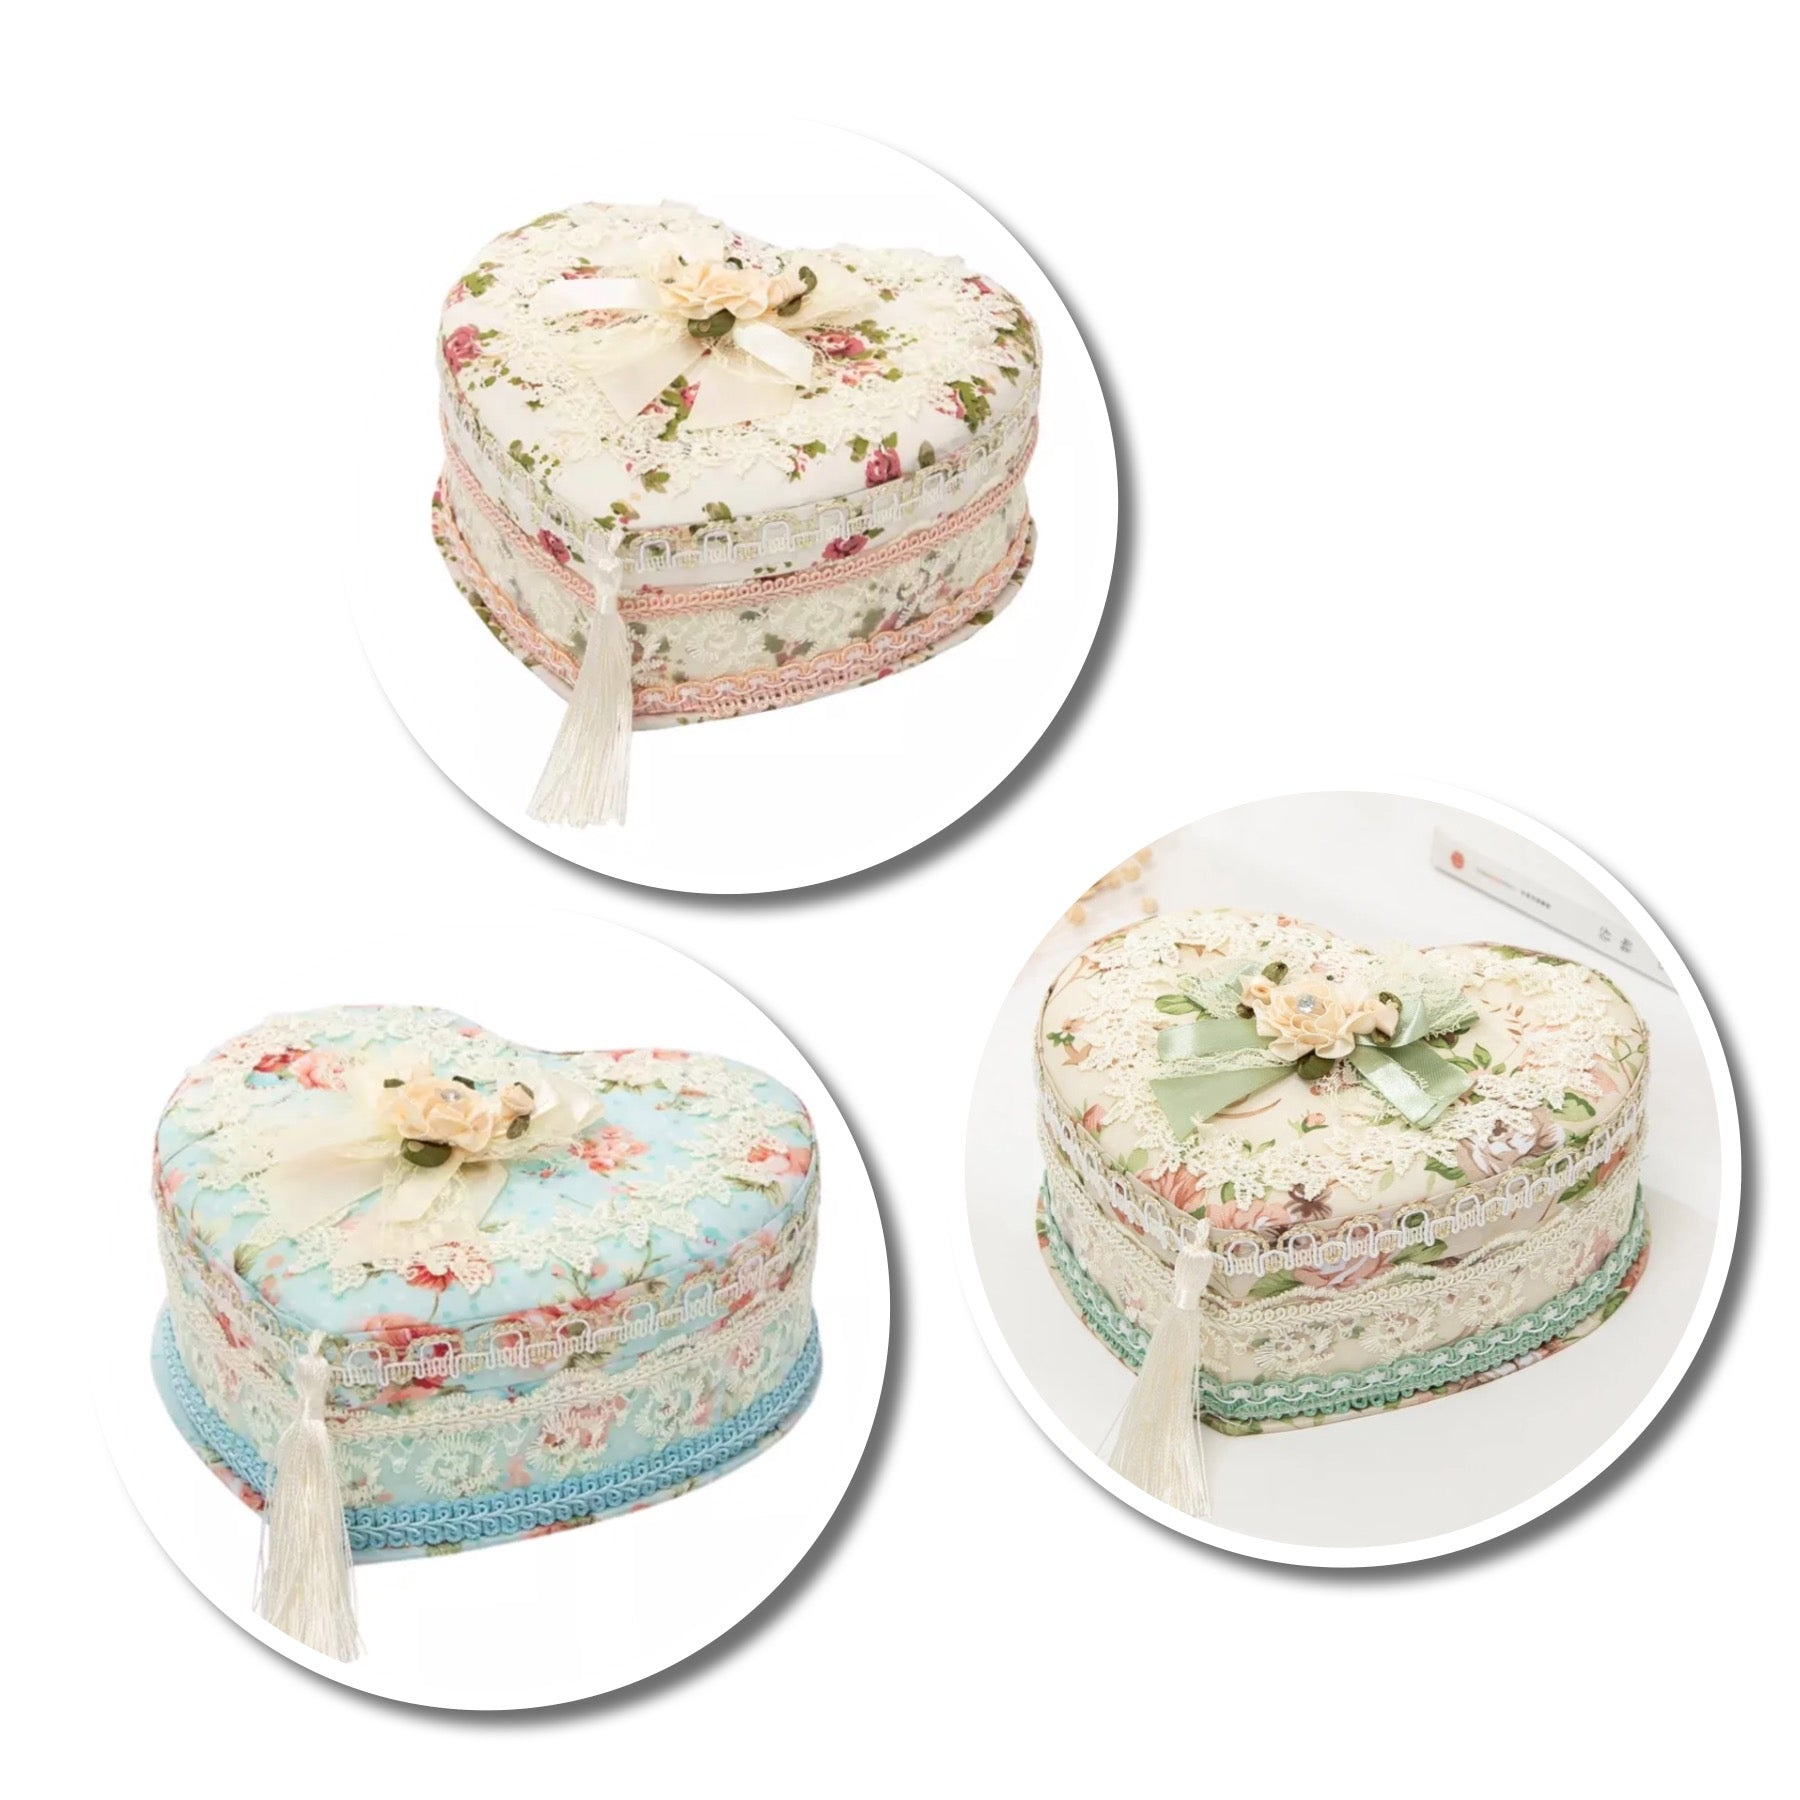 Handmade Jewelry Box Storage Box Lace Fabric